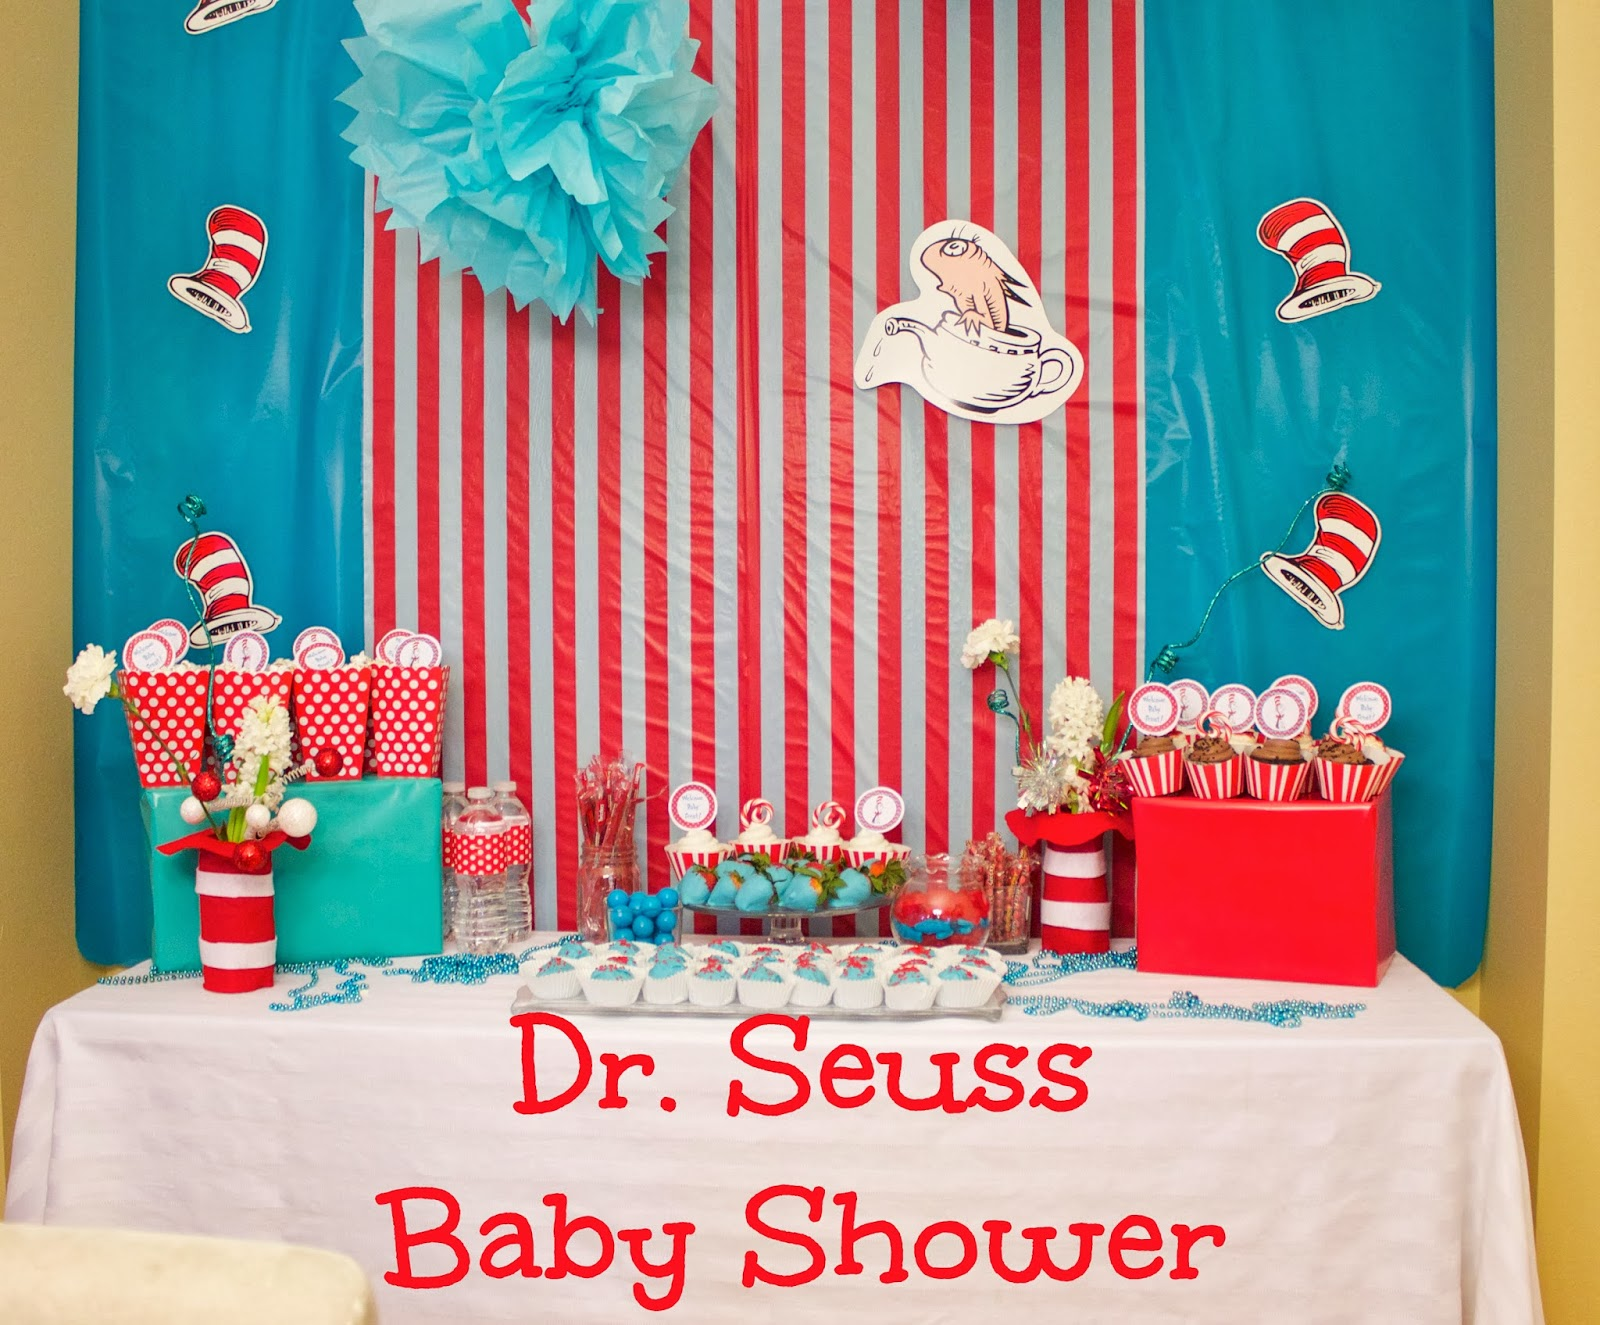 Baby Shower Ideas For Decorations Dr Seuss Theme